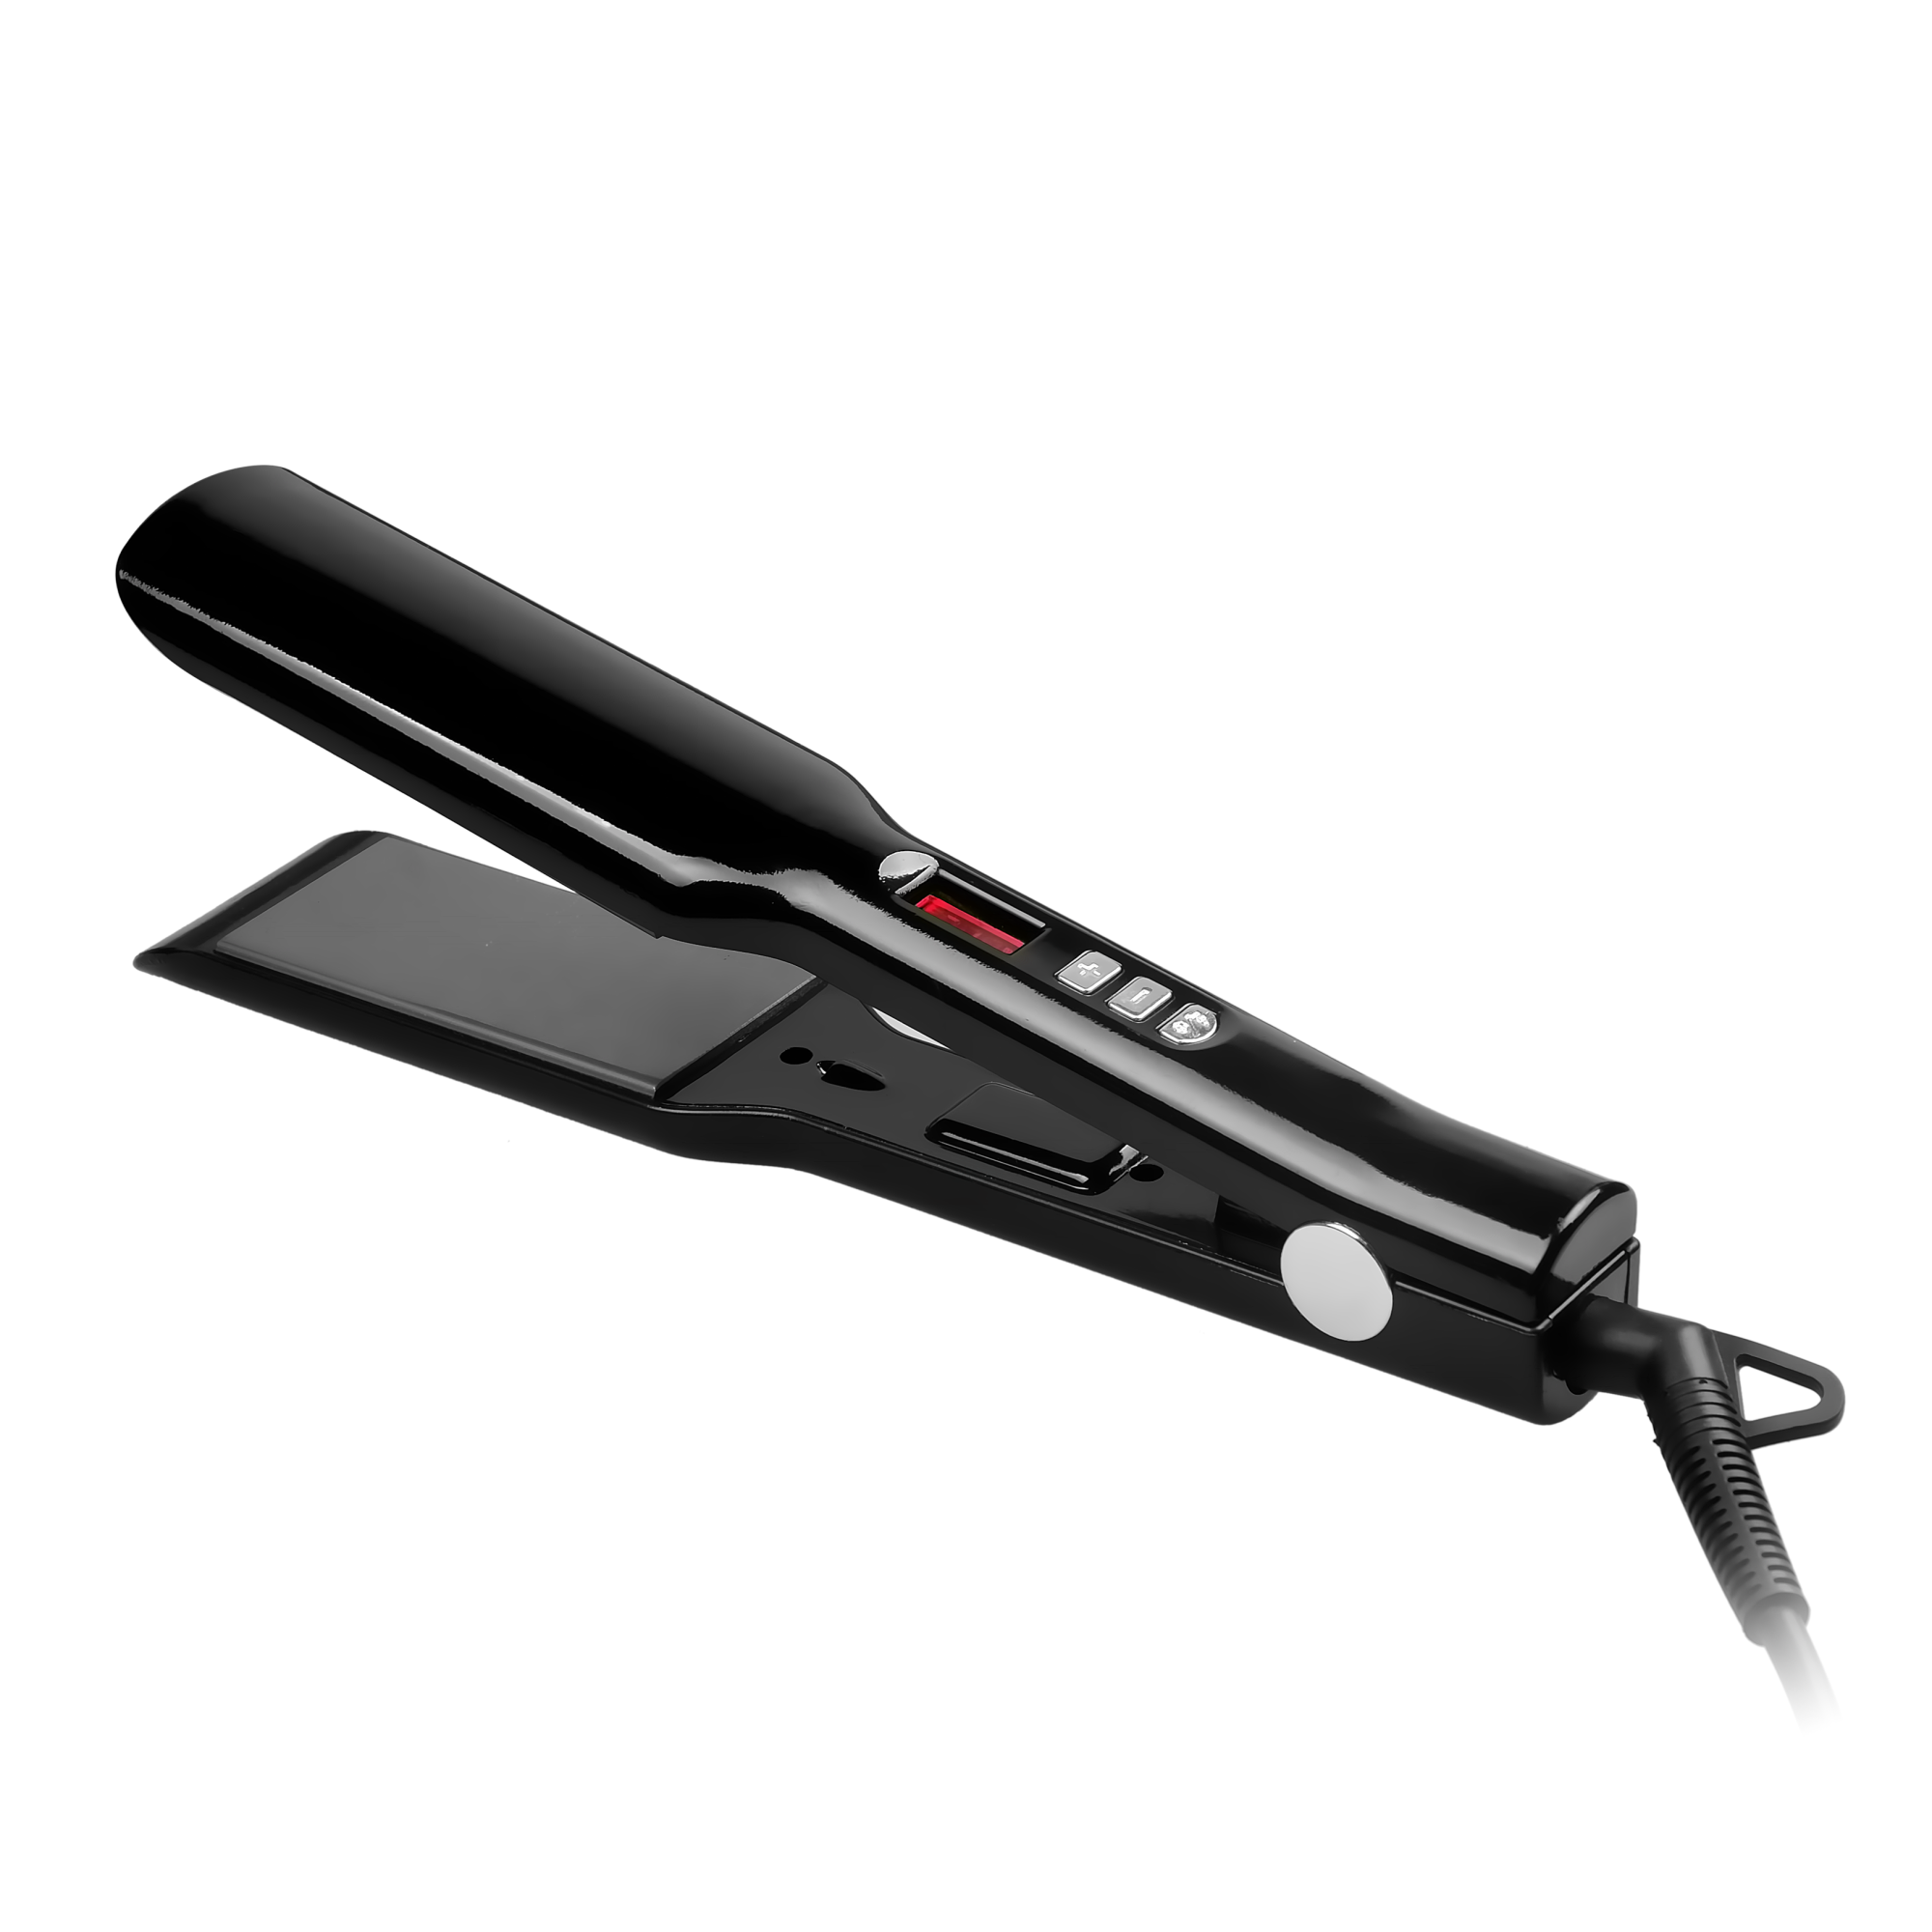 2017 hot selling hair flat iron titanium private label wholesale hair straightener